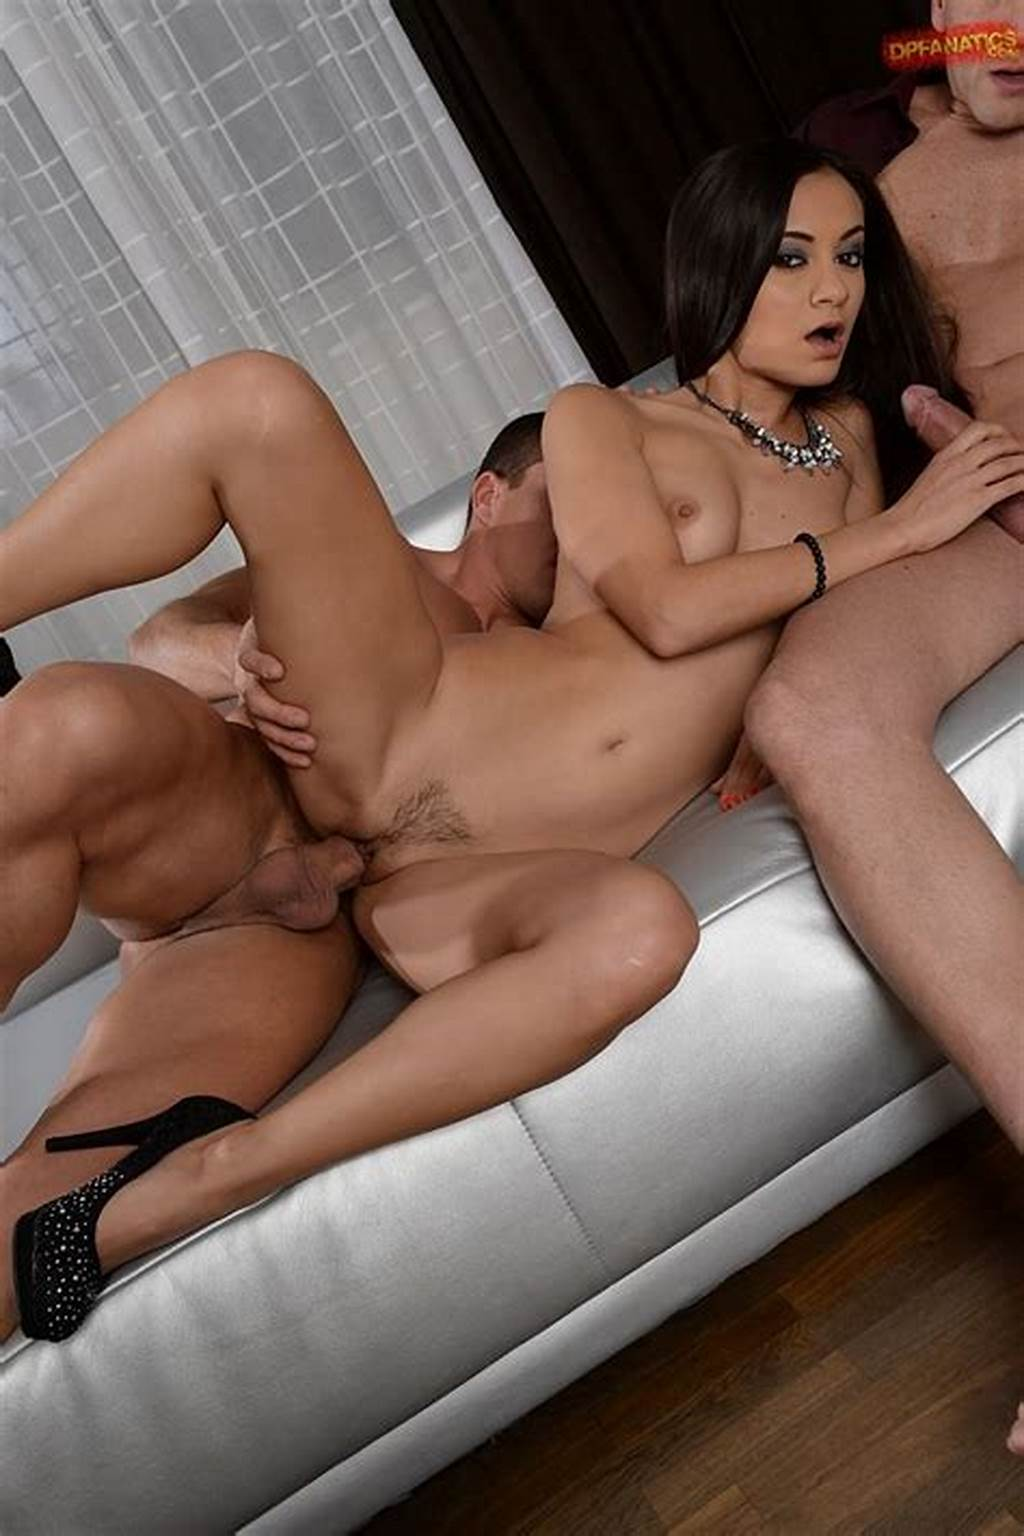 #Shrima #Malati #Gets #Double #Penetrated #On #The #Couch